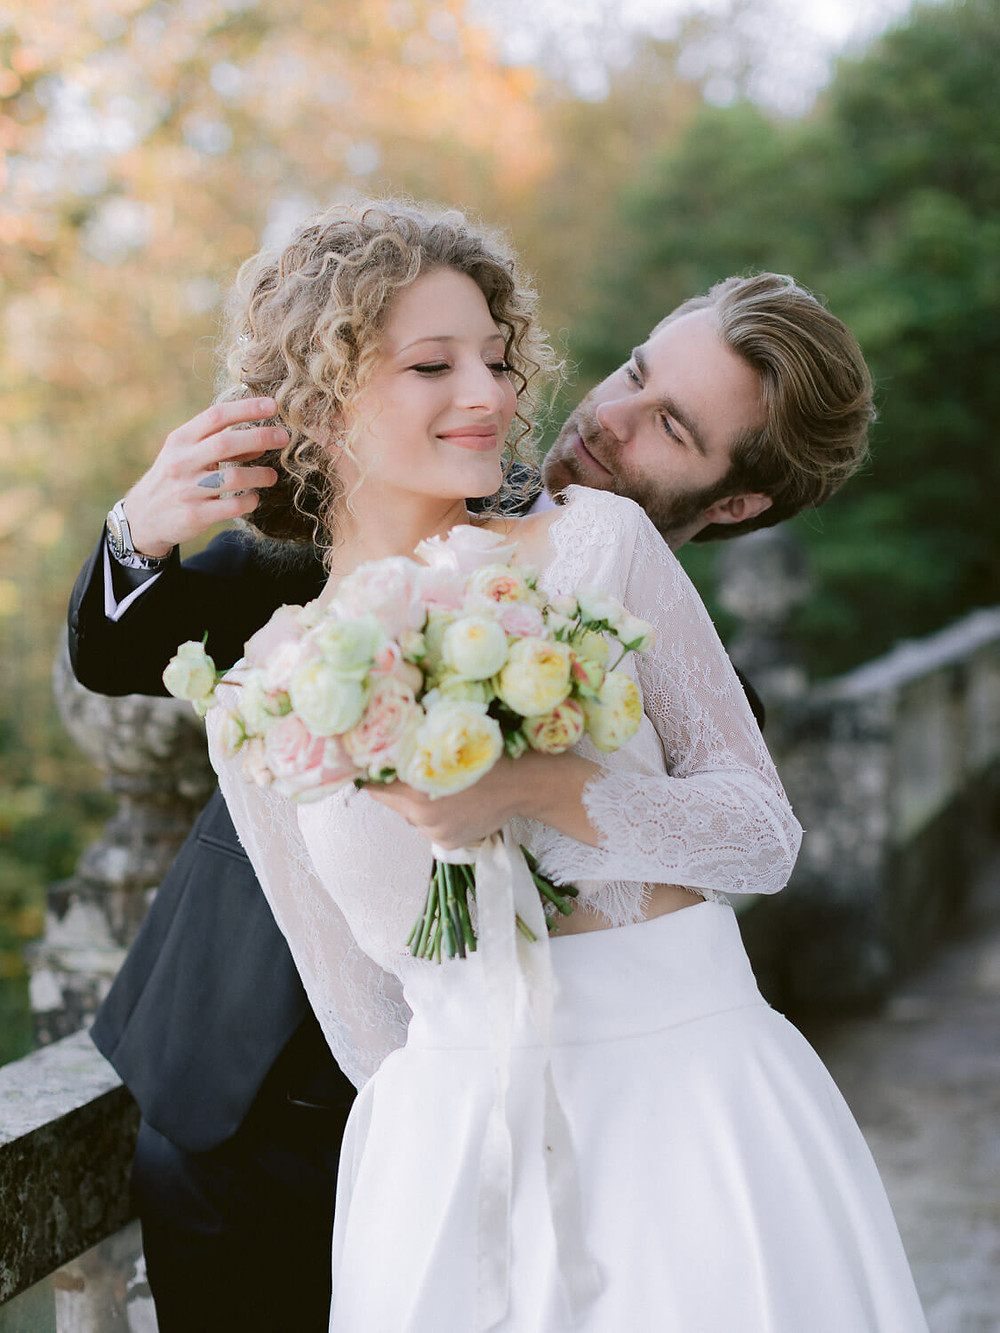 Top 5 wedding photographers in Portugal - Portugal Wedding Photographer